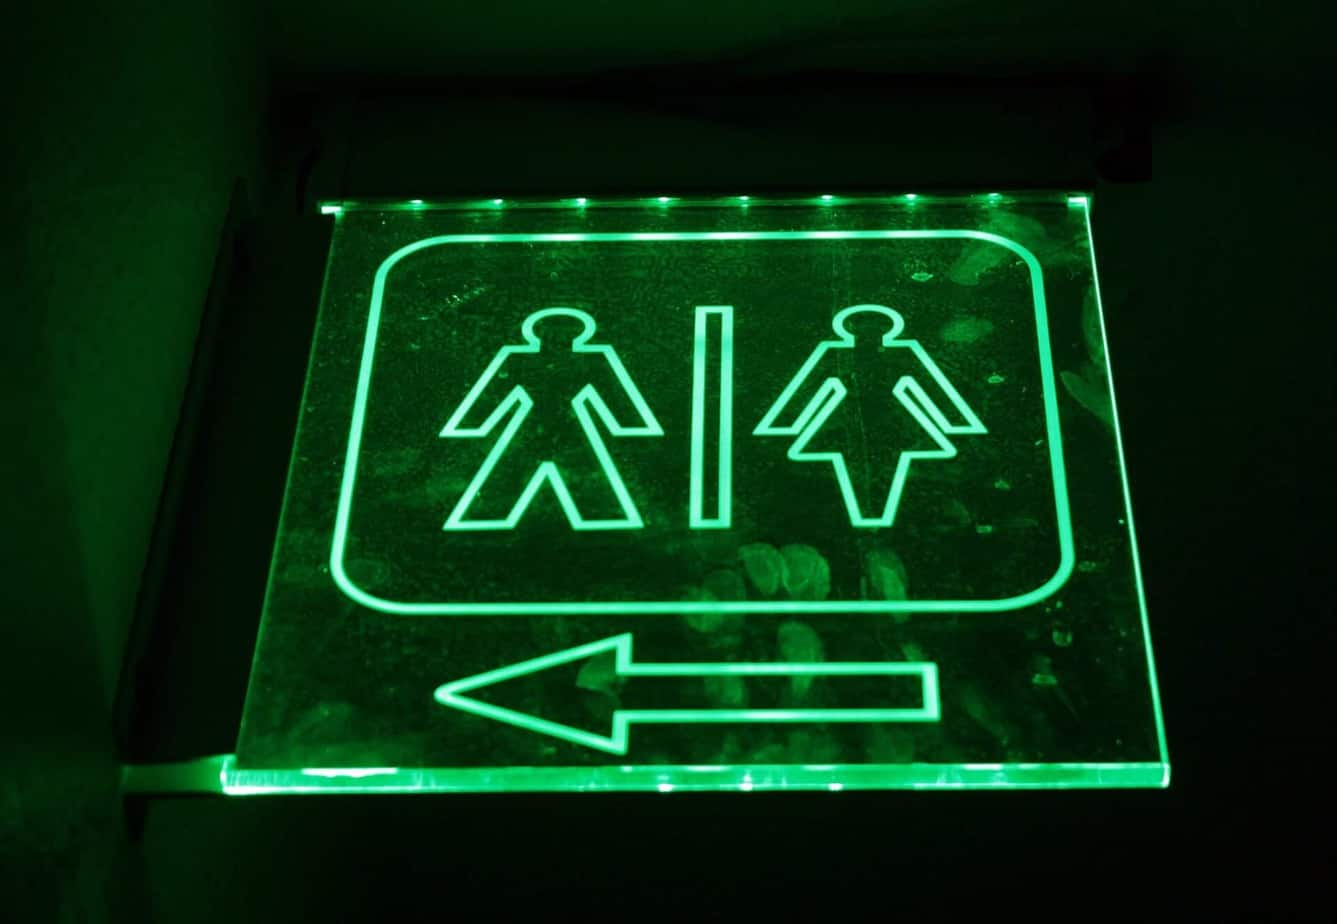 Restrooms Worldwide - Gender and Travel - Only Once Today